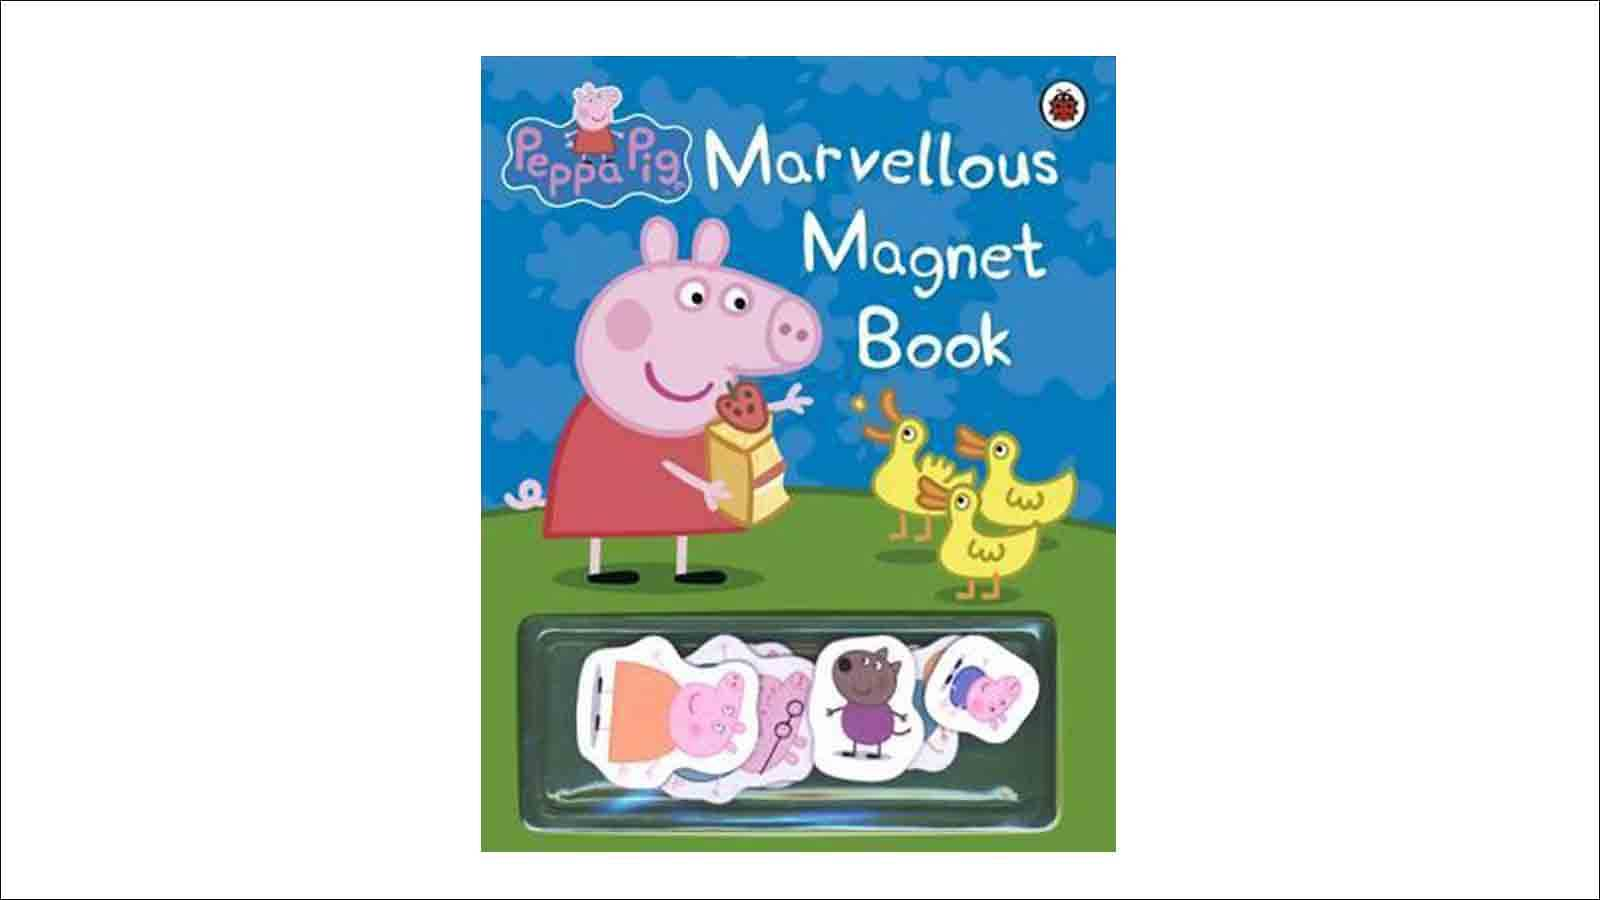 Tots-BUYER'S-GUIDE-10-Must-read-books-PEPPA-PIG-MARVELLOUS-MAGNET-BOOK